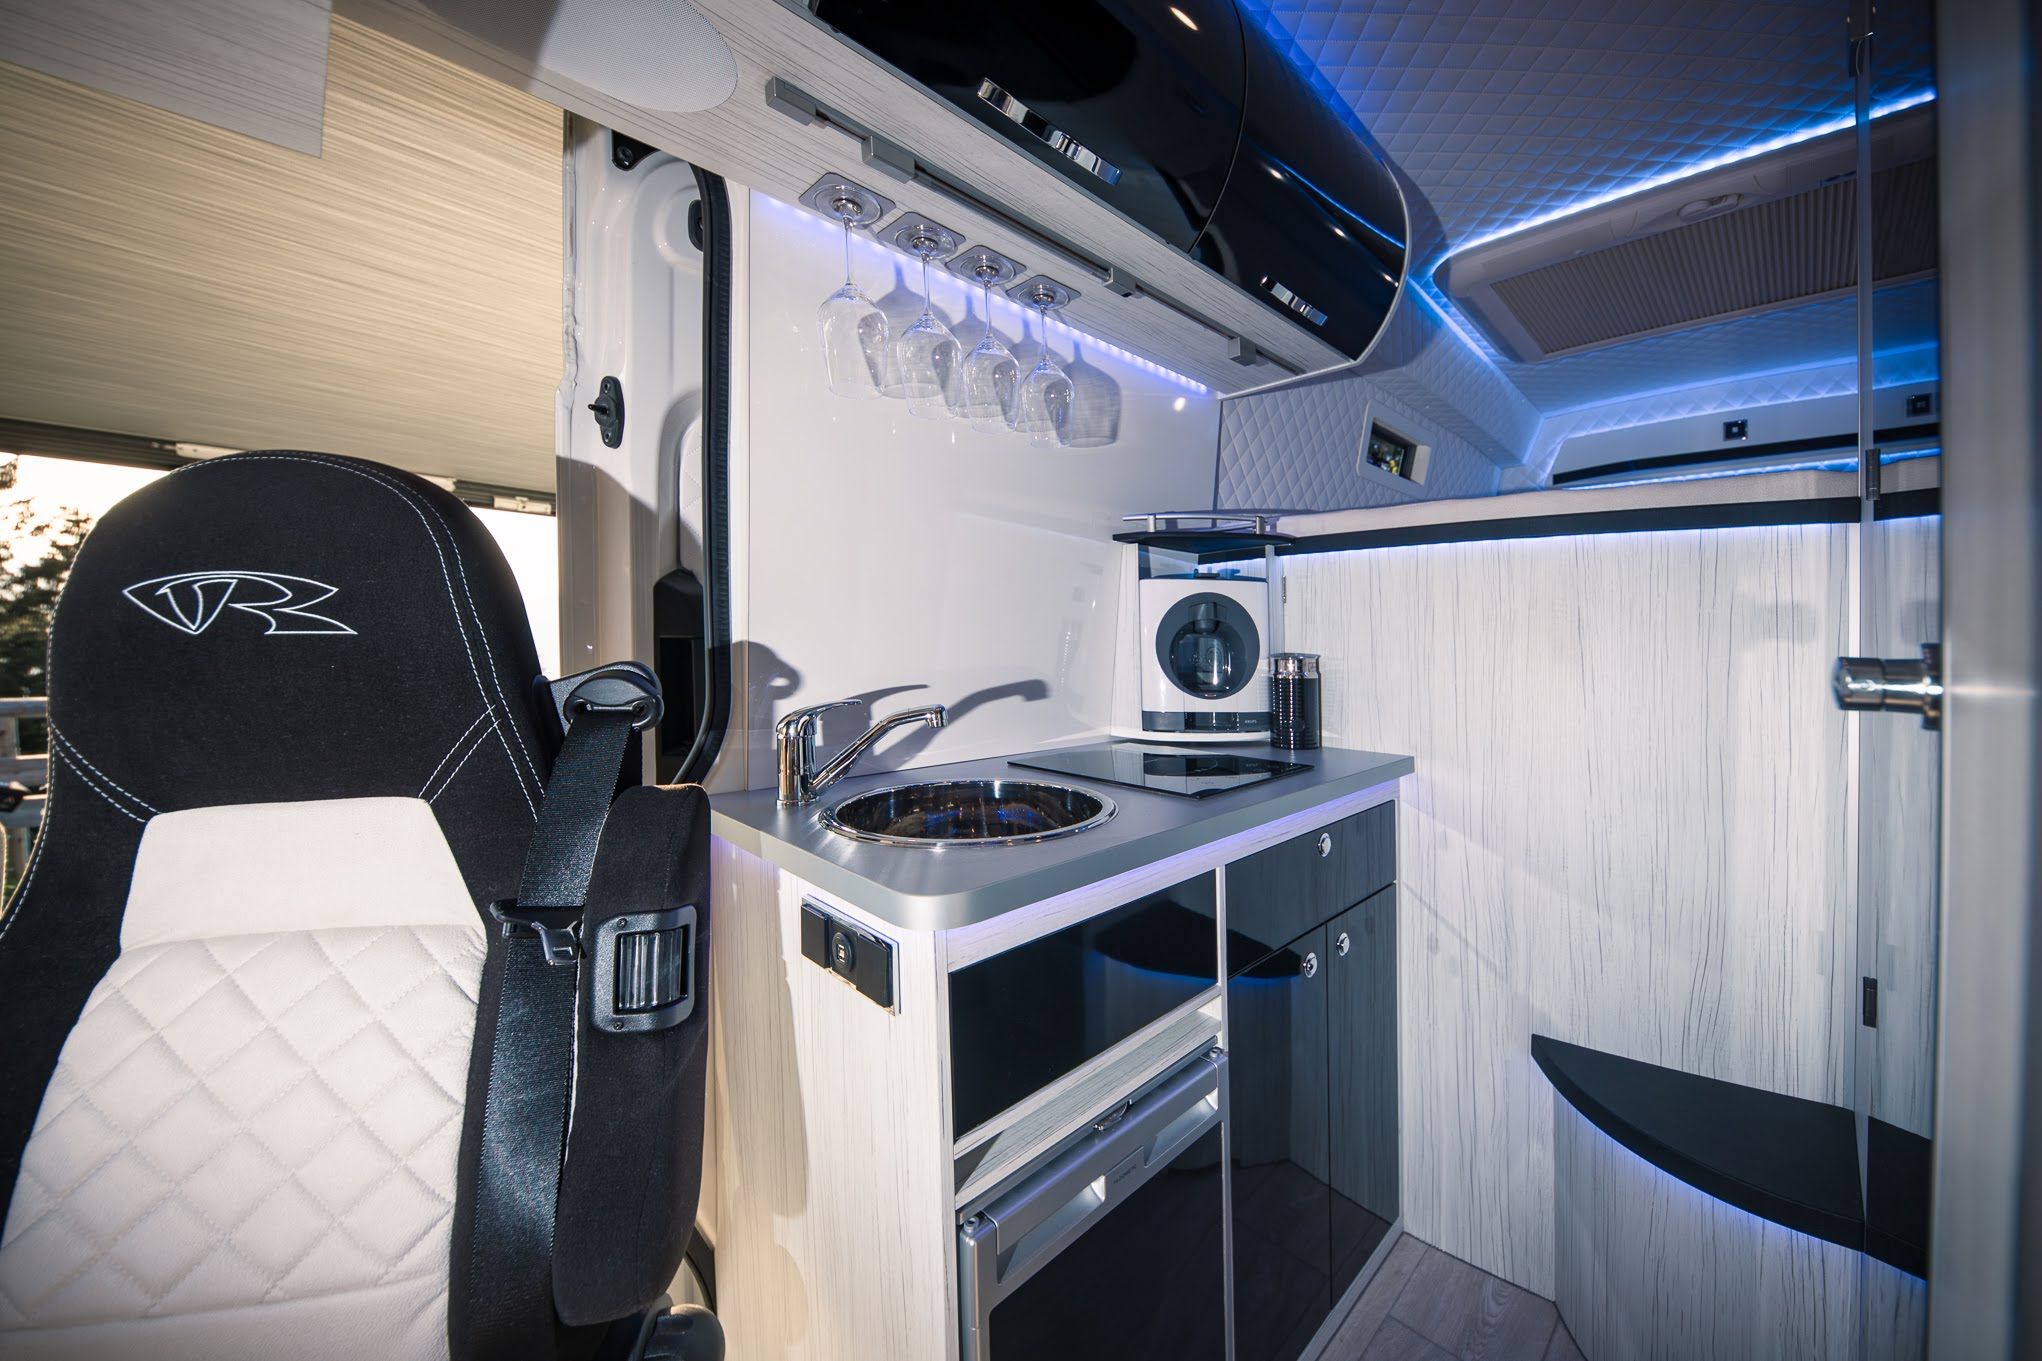 vr crafter wohnmobil new crafter vw crafter schoene luxus kueche motorhomes kitchen vr-motorhomes design